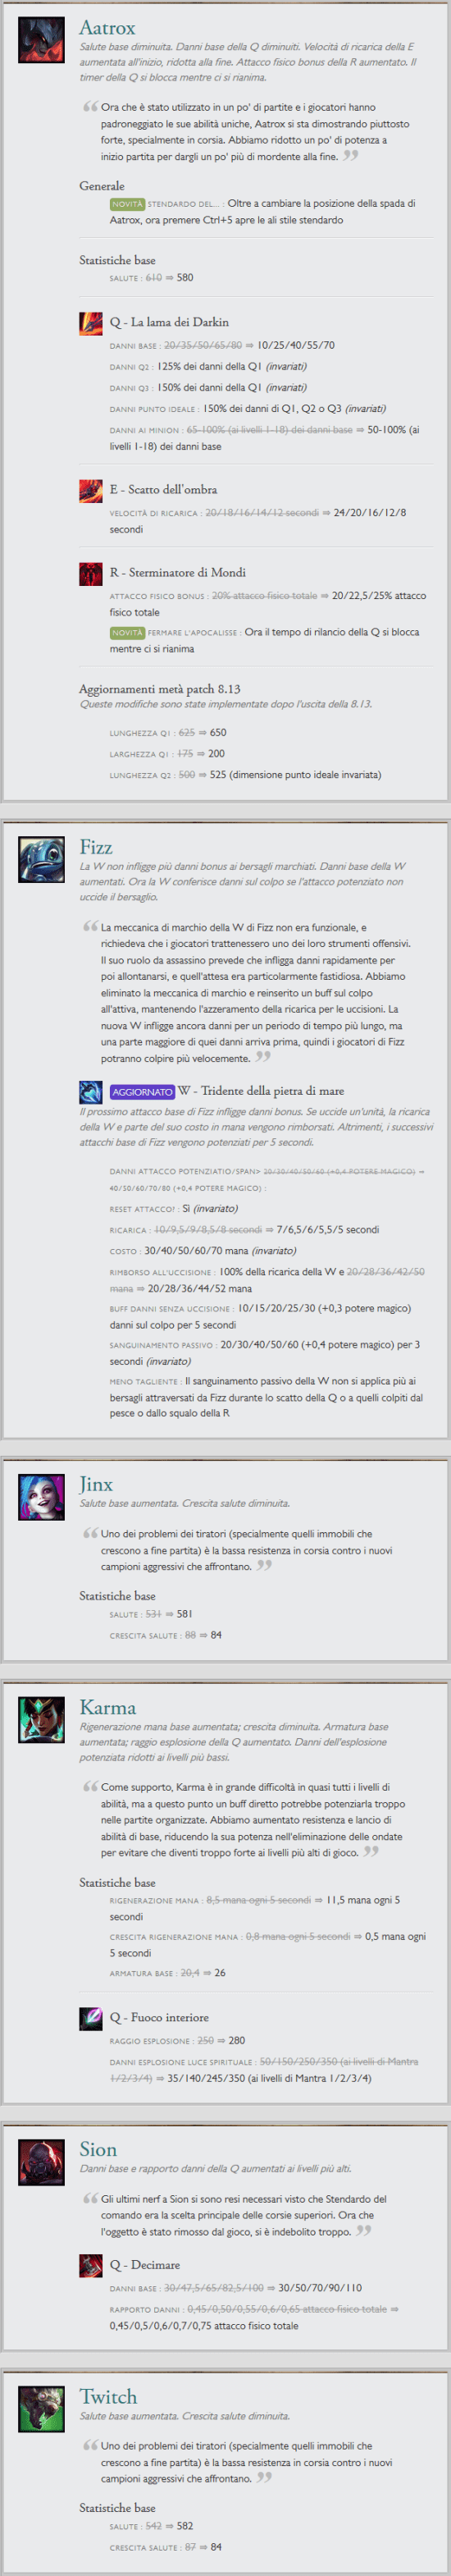 League of Legends Patch Notes 8.14 Aatrox Fizz Jinx Karma Sion Twitch